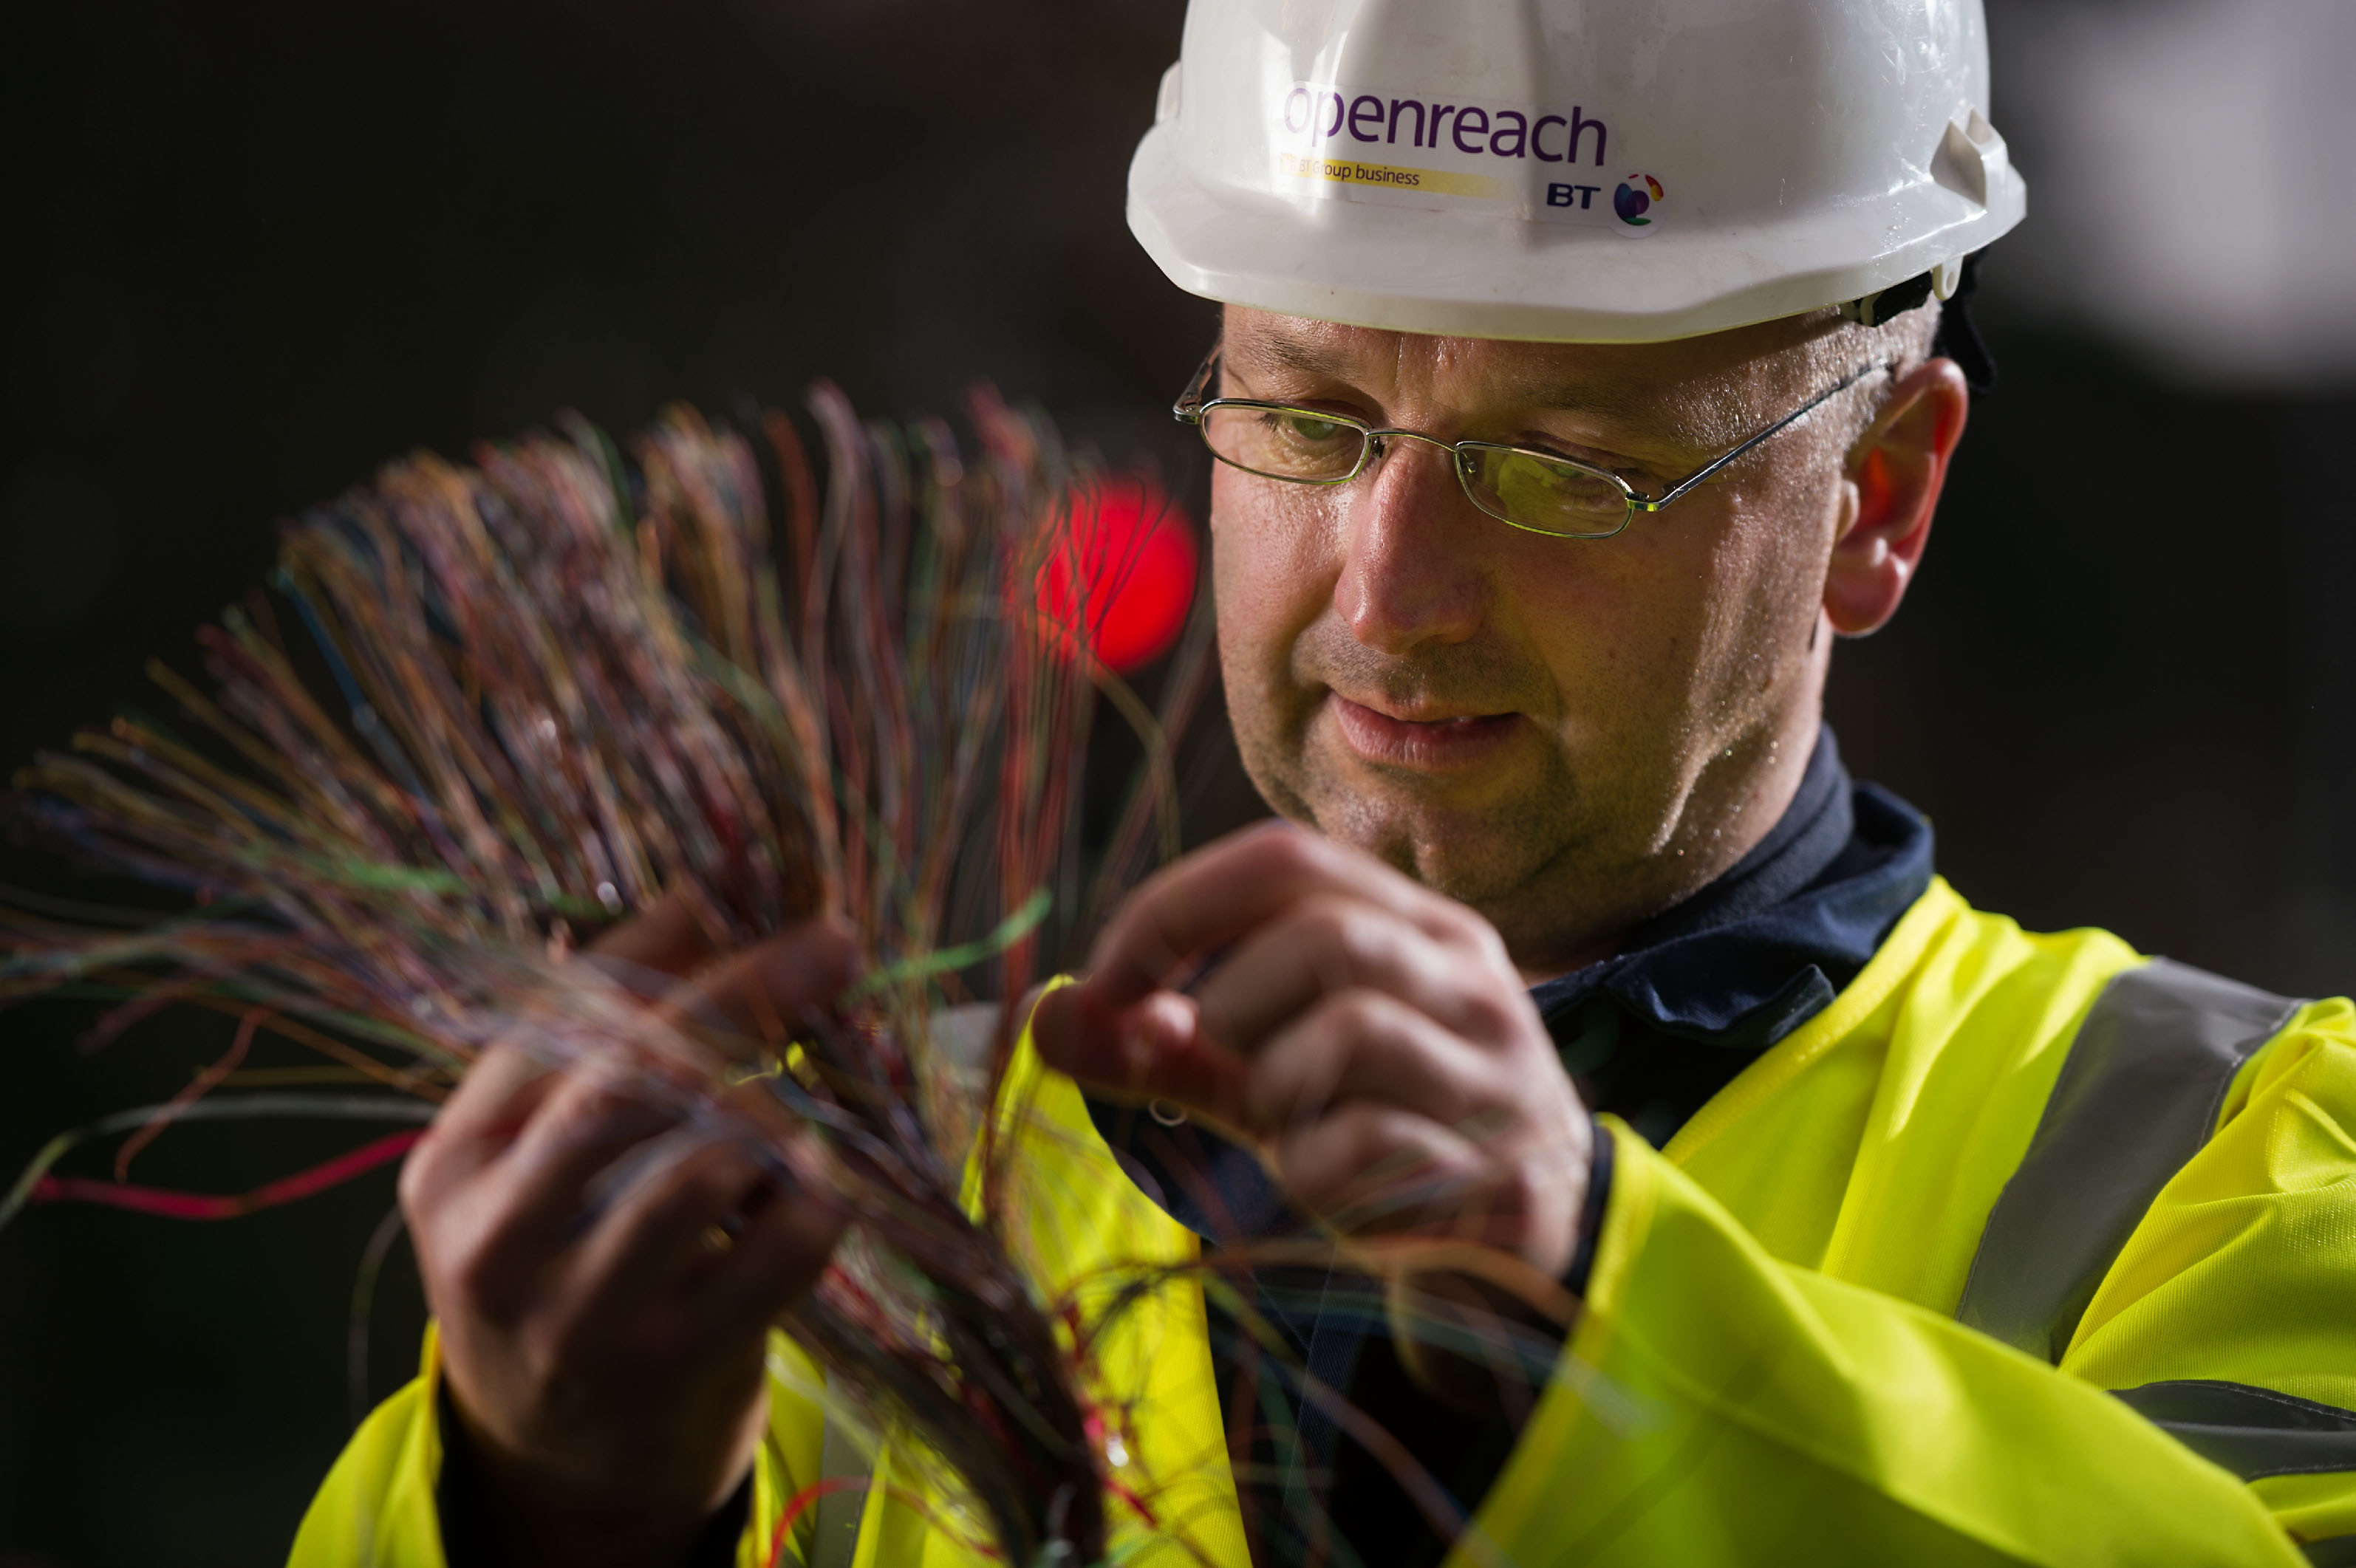 BT Openreach engineer Alistair Mcgowan working on the rollout of high-speed fibre broadband.